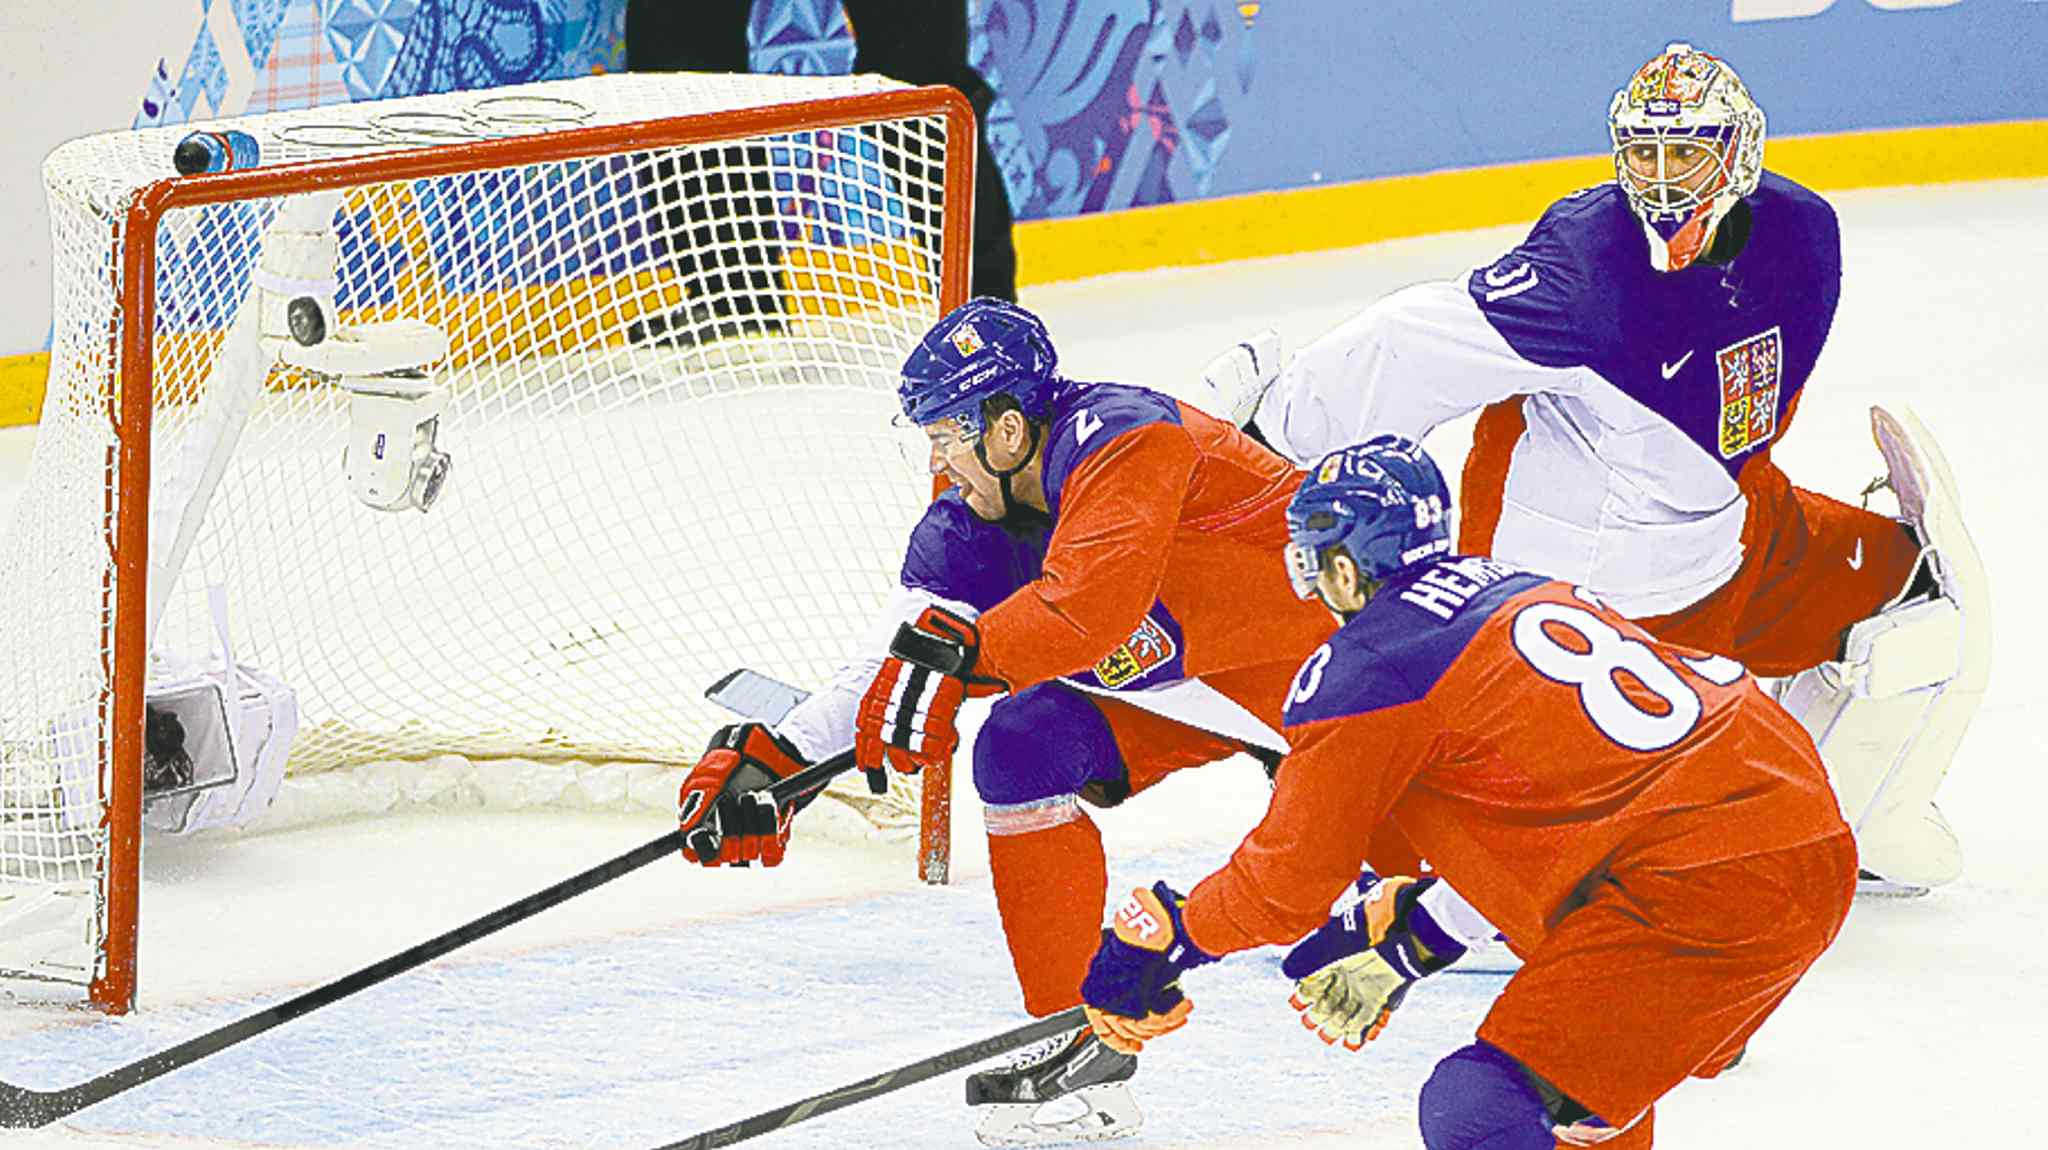 A shot by USA forward Dustin Brown beats Czech Republic goaltender Ondrej Pavelec in a quarter-final game in Sochi on Wednesday.